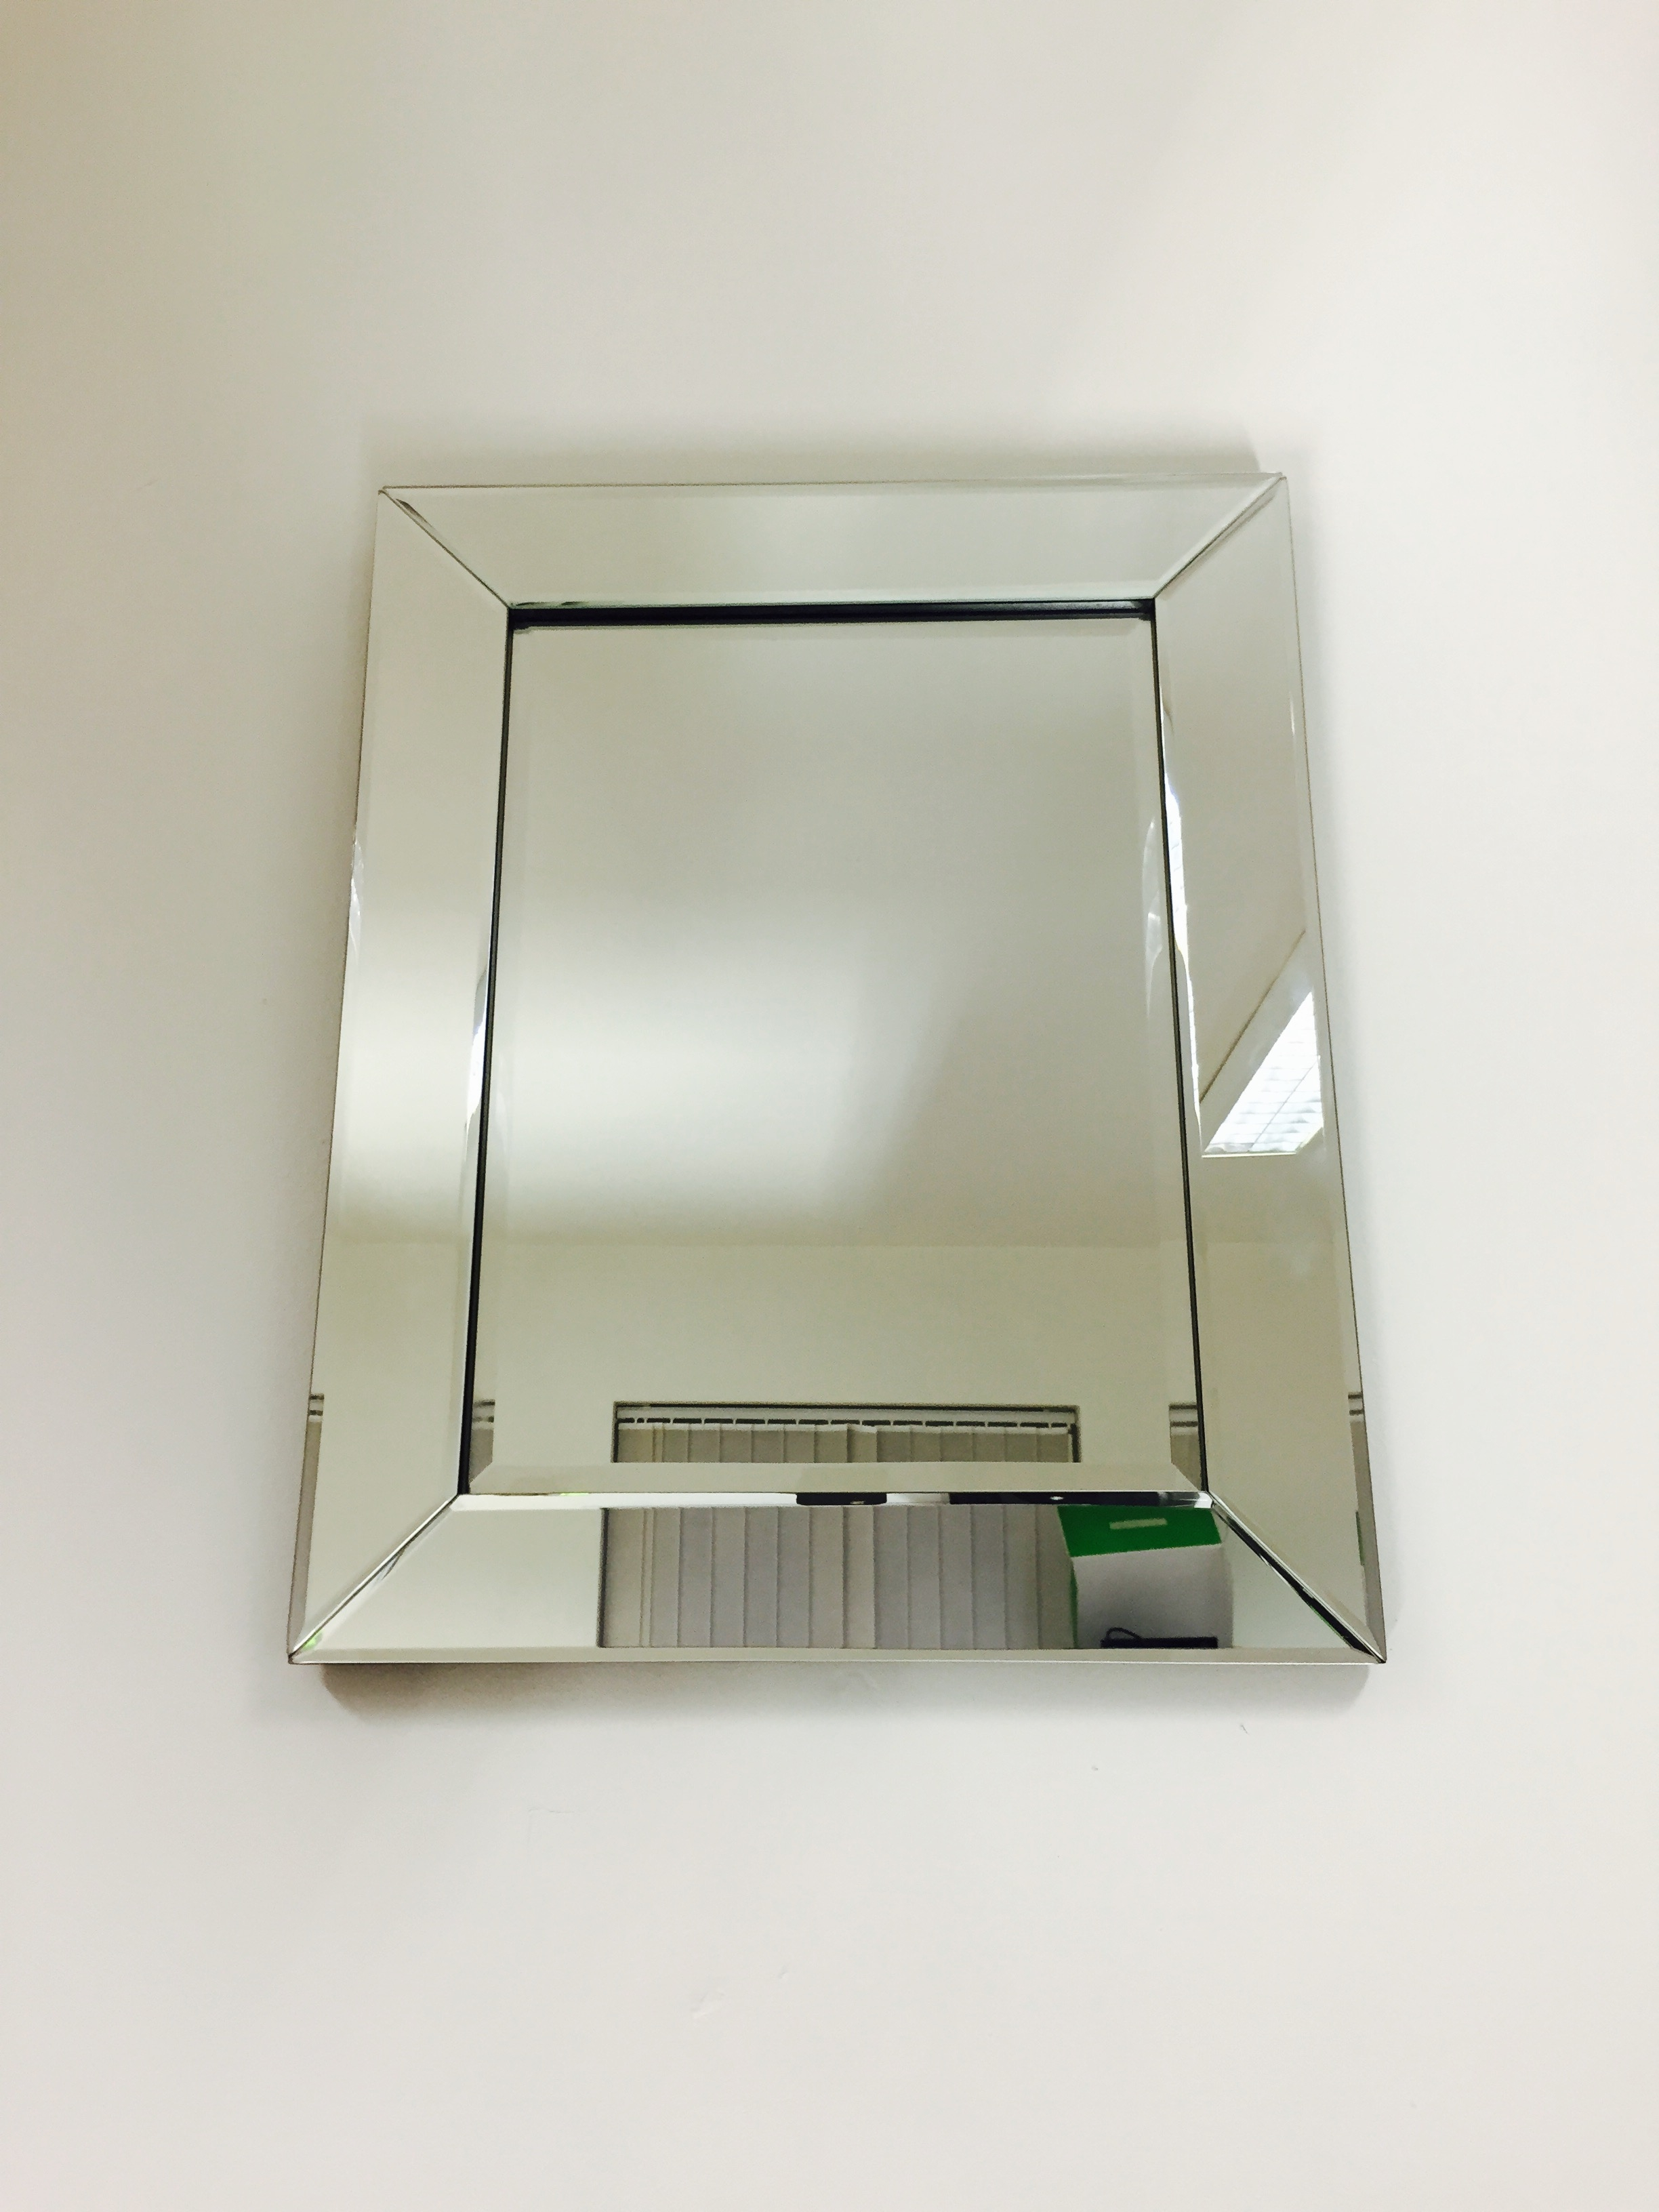 Prs Group Uk Venetian Bevelled Wall Mirror 50cm X 40cm Regarding Venetian Bevelled Mirror (View 8 of 15)